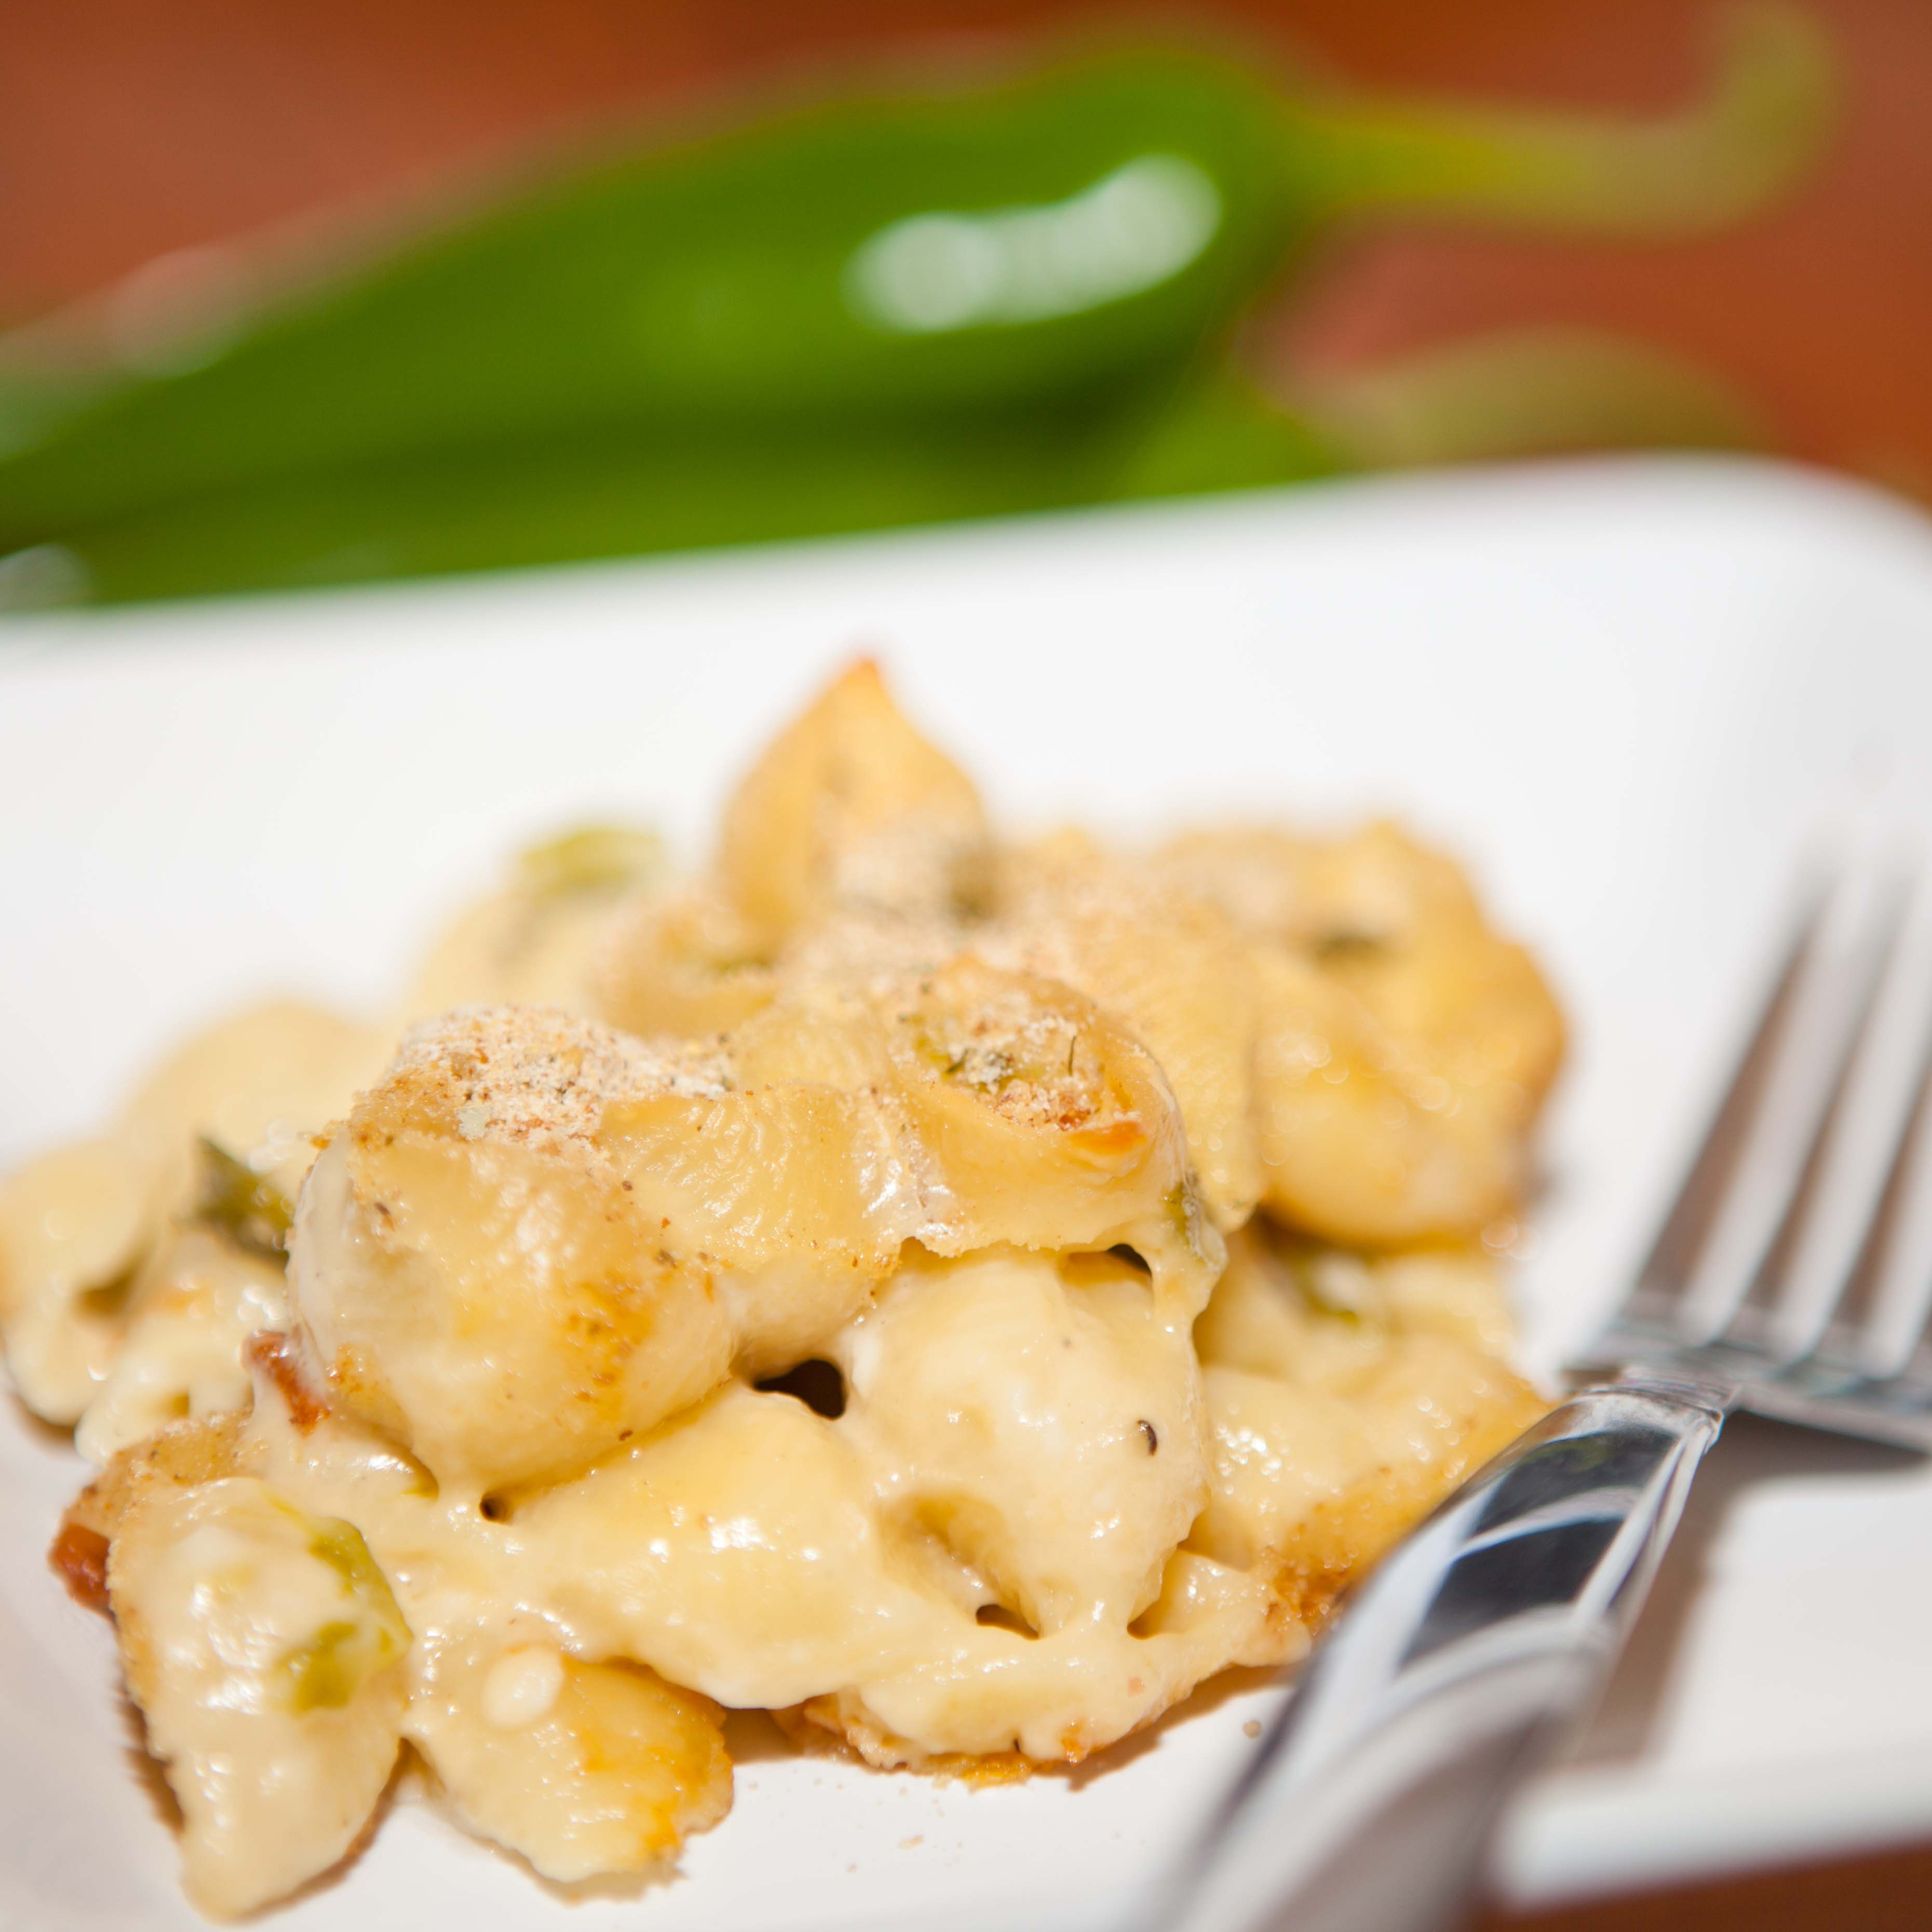 ... October 24, 2012 at 3721 × 3721 in Roasted Pepper Mac n Cheese